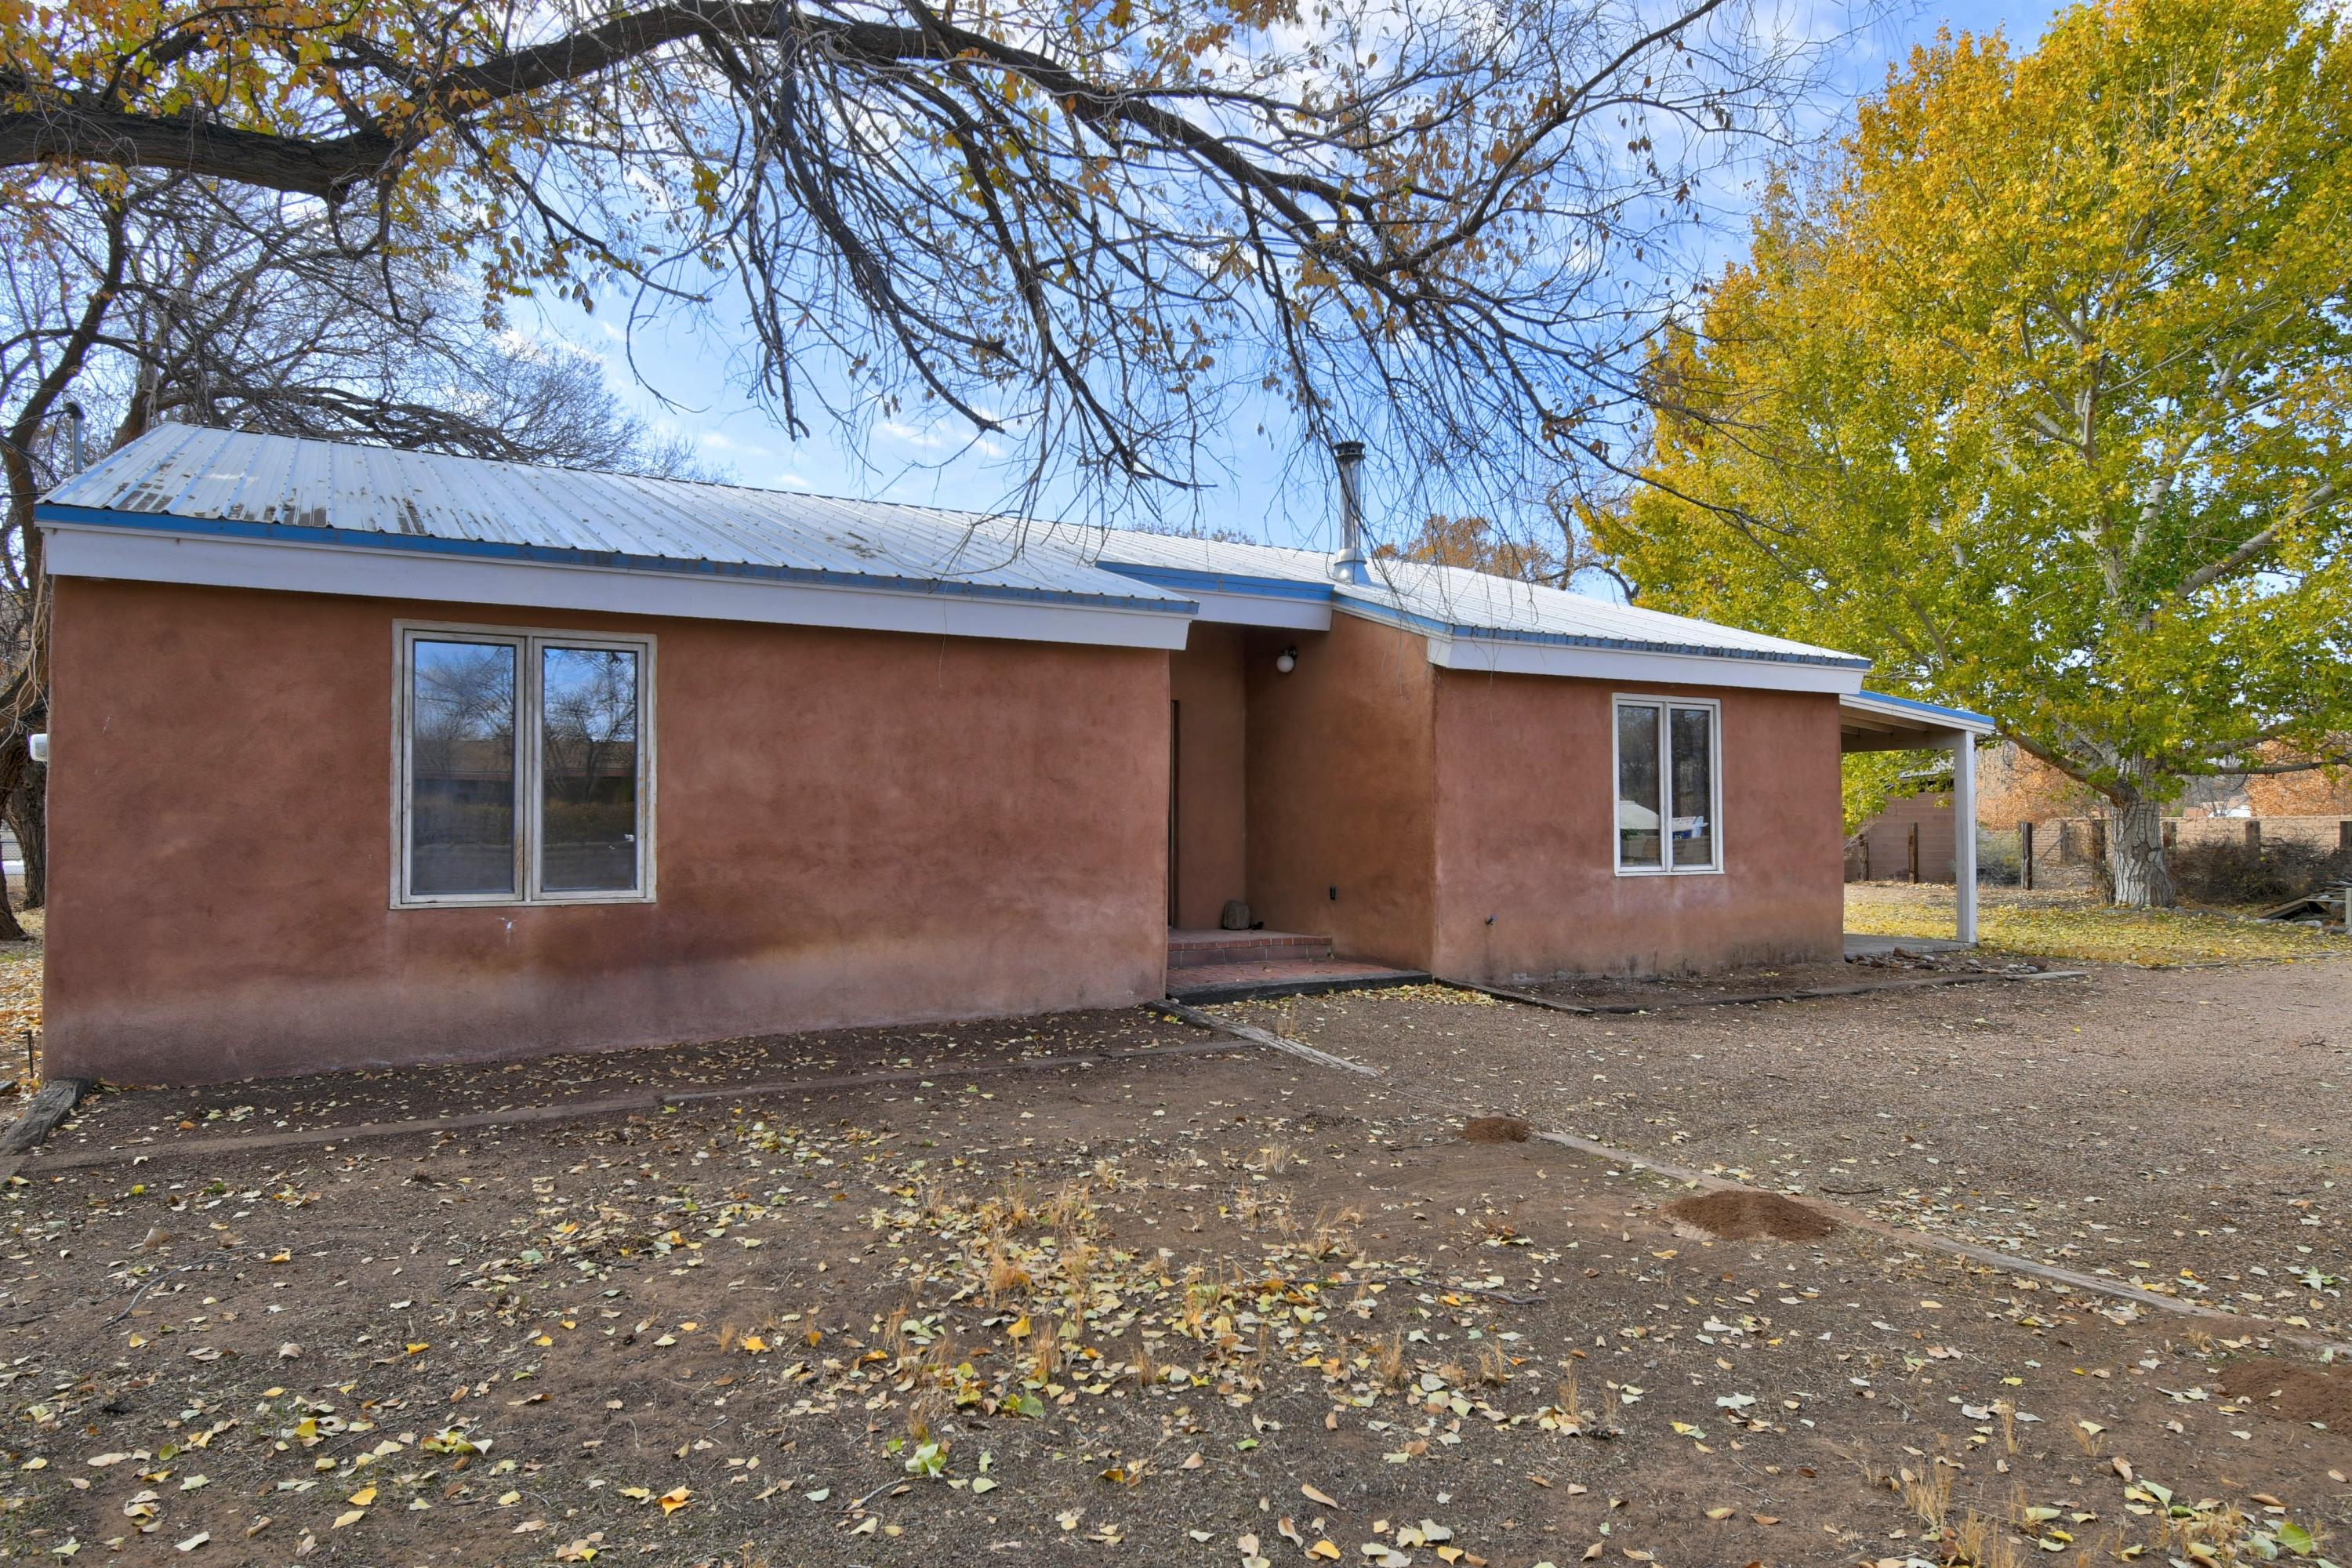 Adorable east side adobe on 1/2 acre in greenbelt.  Fabulous location to walk to Corrales restaurants, or Bosque preserve.  2 bedroom, 2 bathrooms, 2 living areas. Second living area is perfect for library or studio. Nice kitchen with dining area. Brick floors, high beamed ceilings, radiant heat, evaporative cooling.  West portal for outdoor living.  Privacy, mature cottonwoods, adobe wall on 2 sides,  2 wells, with one irrigation.  A separate great set up for horses, 2 stalls, large turn out, access to trails.  Storage building.  Room for gardening, dogs, and room to roam!  A wonderful property to call home.